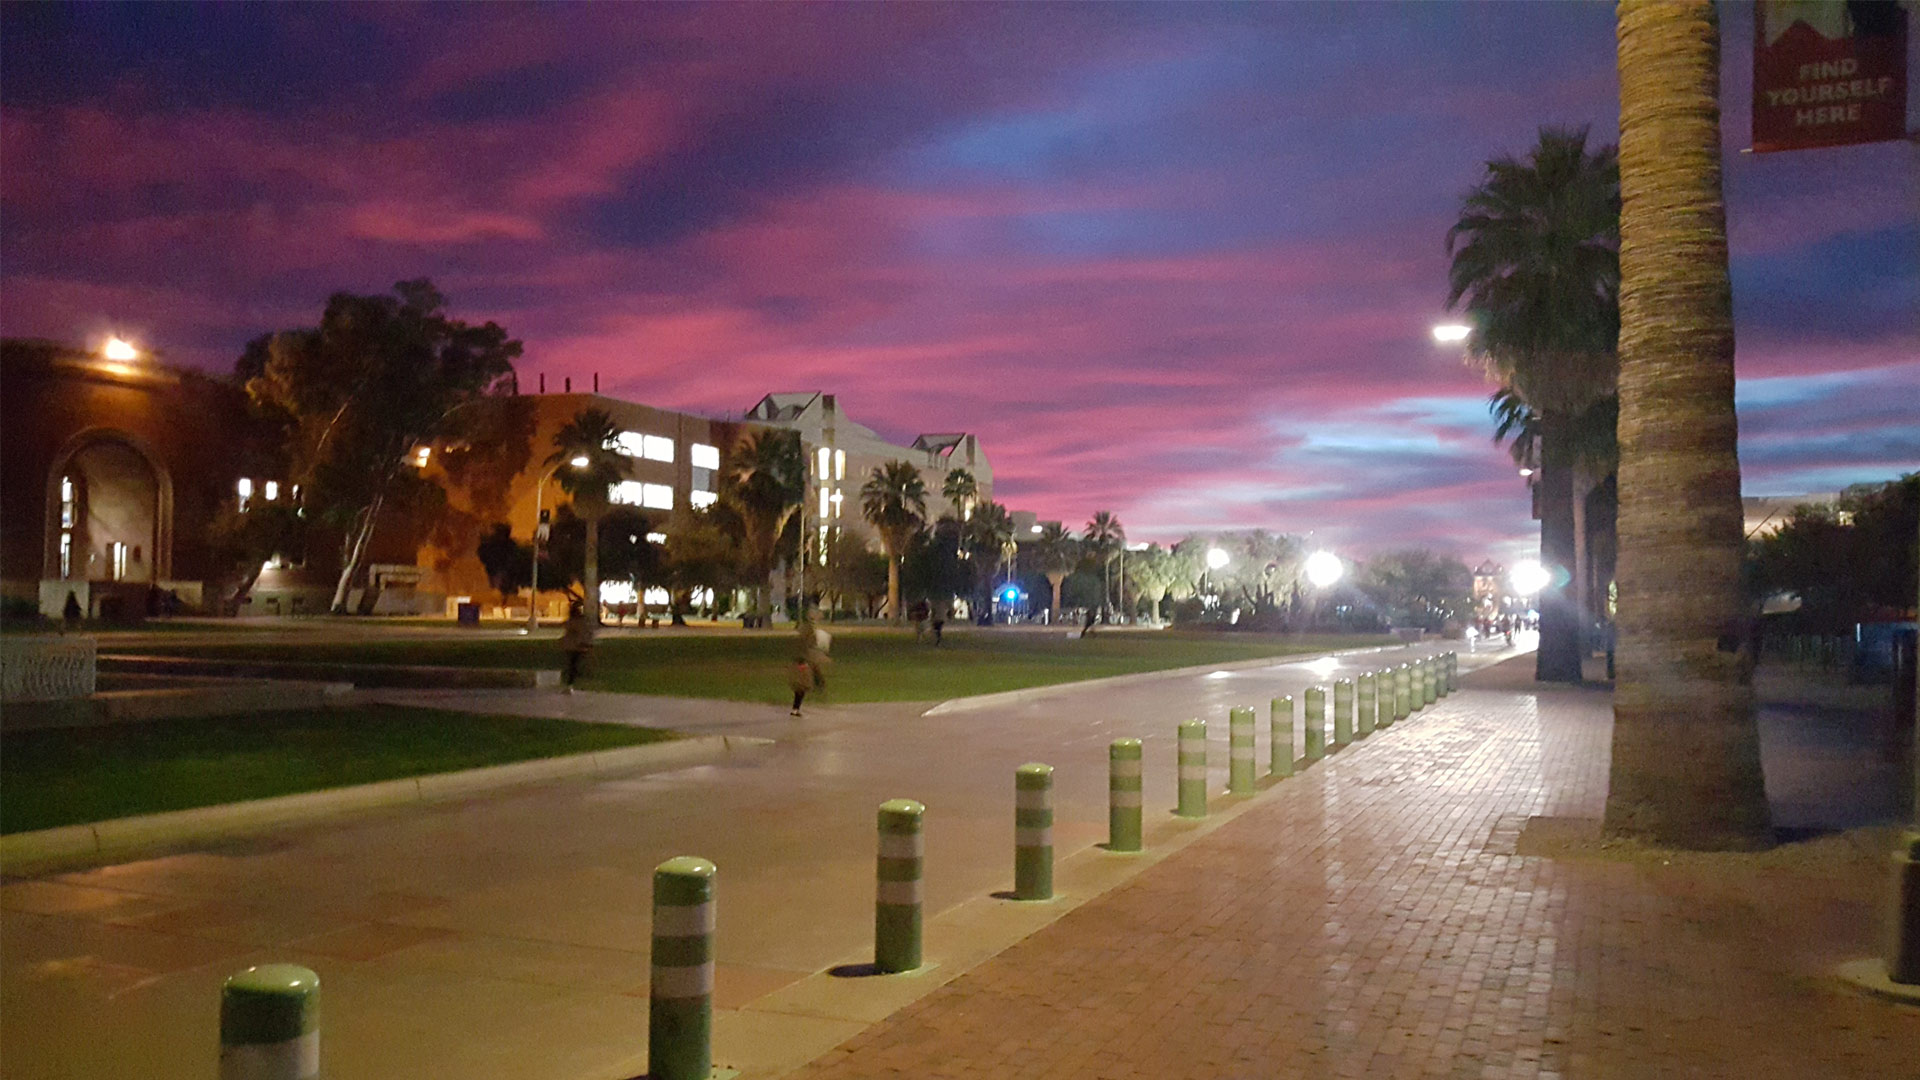 A sunset above the University of Arizona.